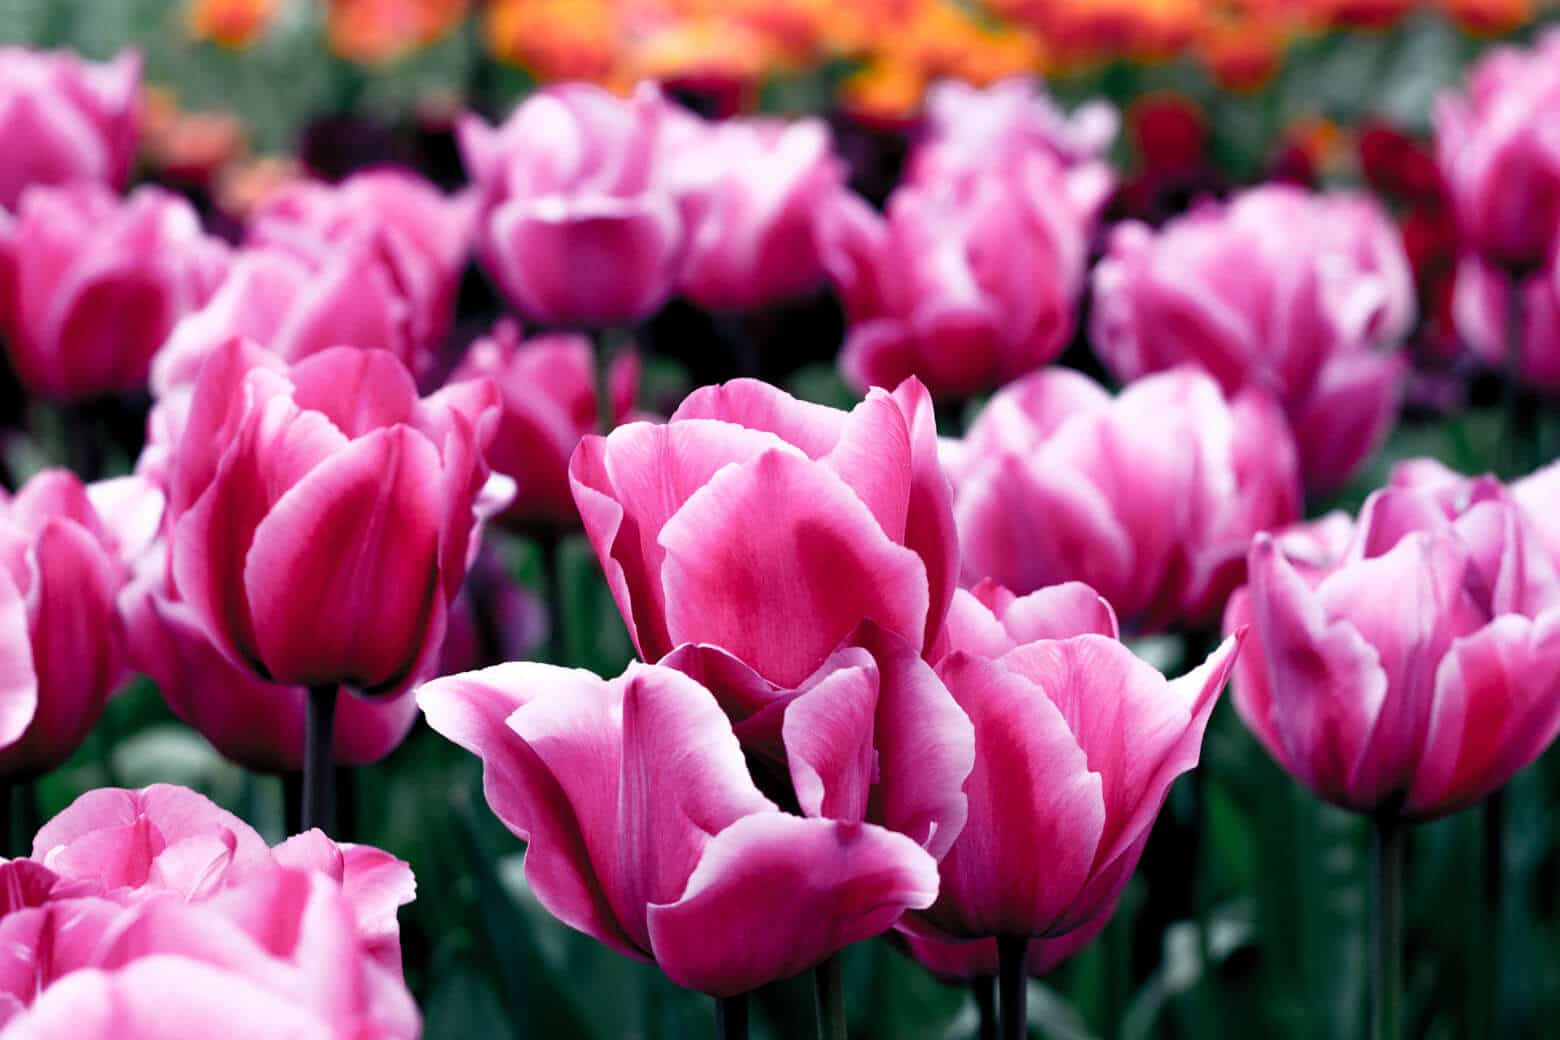 Pink & White Dutch Tulips